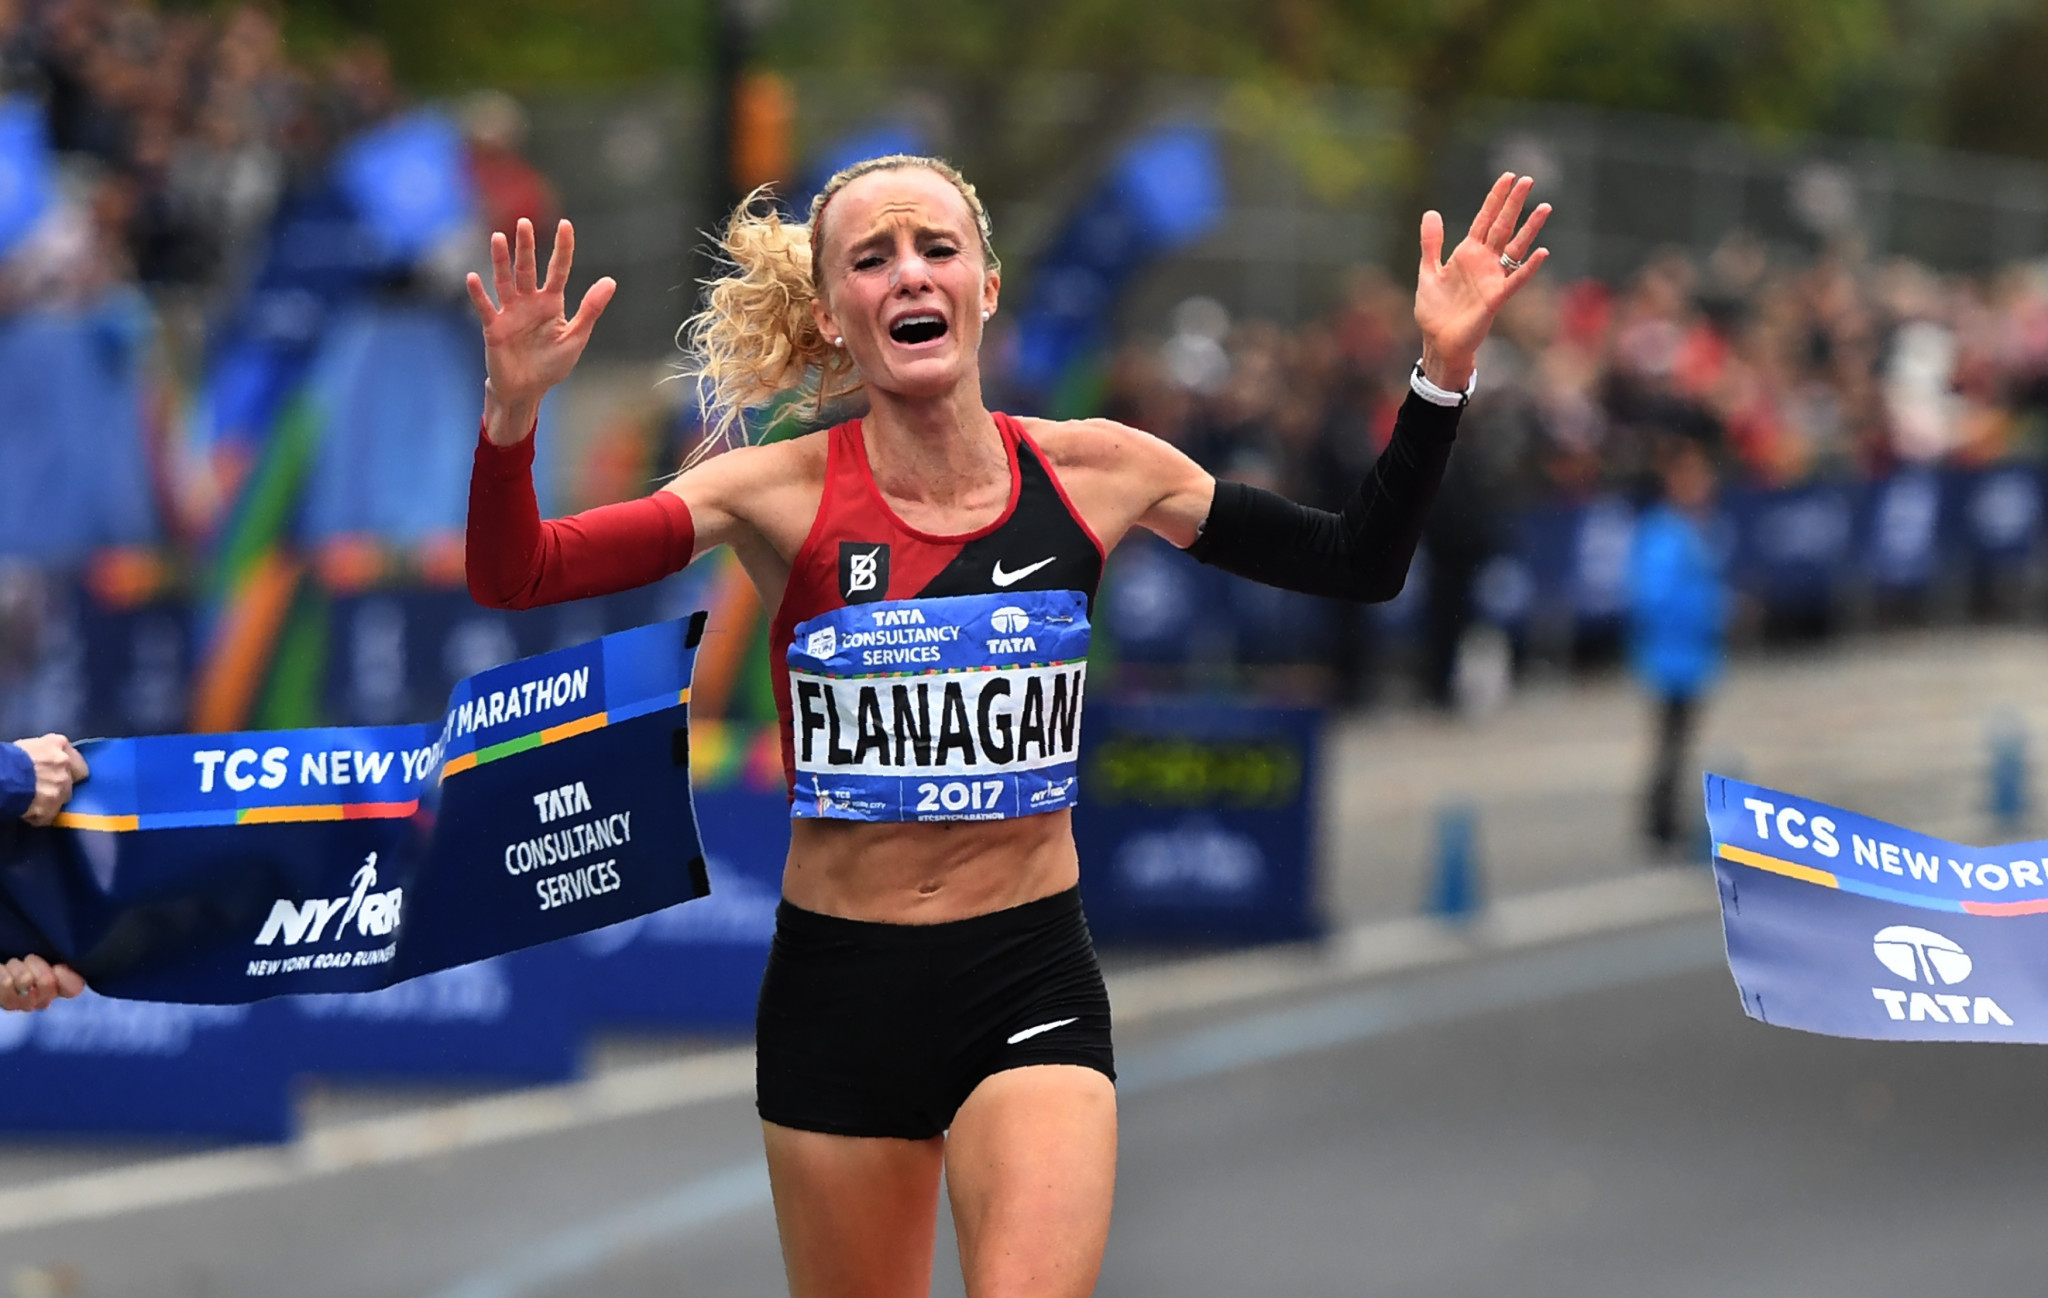 Home hopes high for historic US victory in Boston Marathon